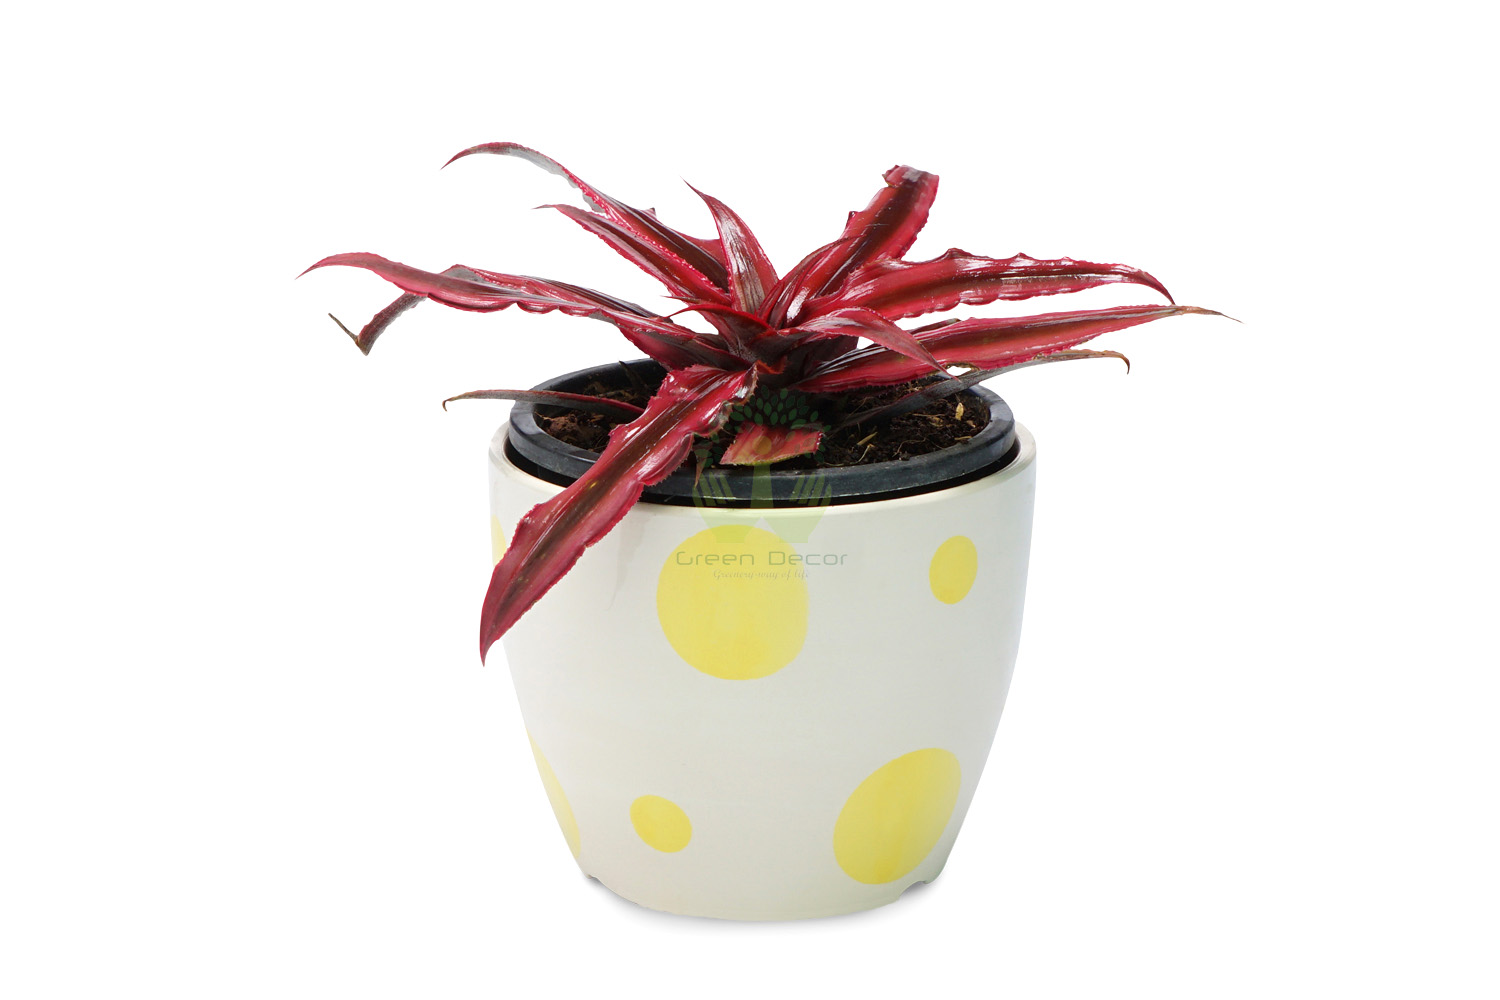 Buy Cryptanthus Plant Front View, White Pots and Seeds in Delhi NCR by the best online nursery shop Greendecor.